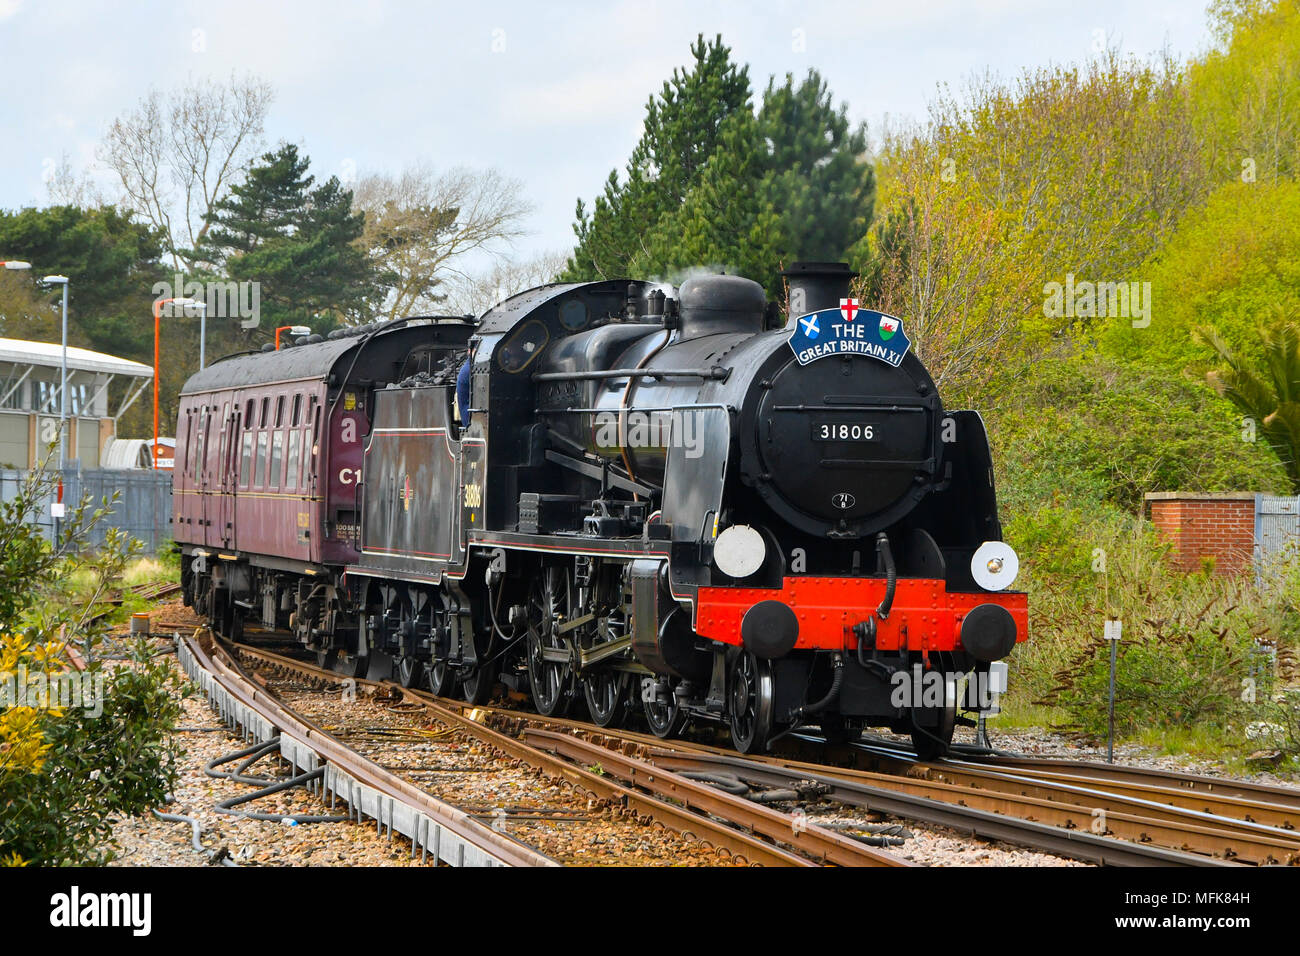 Weymouth, Dorset, UK.  26th April 2018.  The Great Britain XI excursion train hauled by steam locomotives 31806, pictured at the front of the train, and 45212 at the rear of the train, not pictured, arrives at Weymouth Station at the Dorset leg of the 9 day round Britain trip.  Picture Credit: Graham Hunt/Alamy Live News Stock Photo